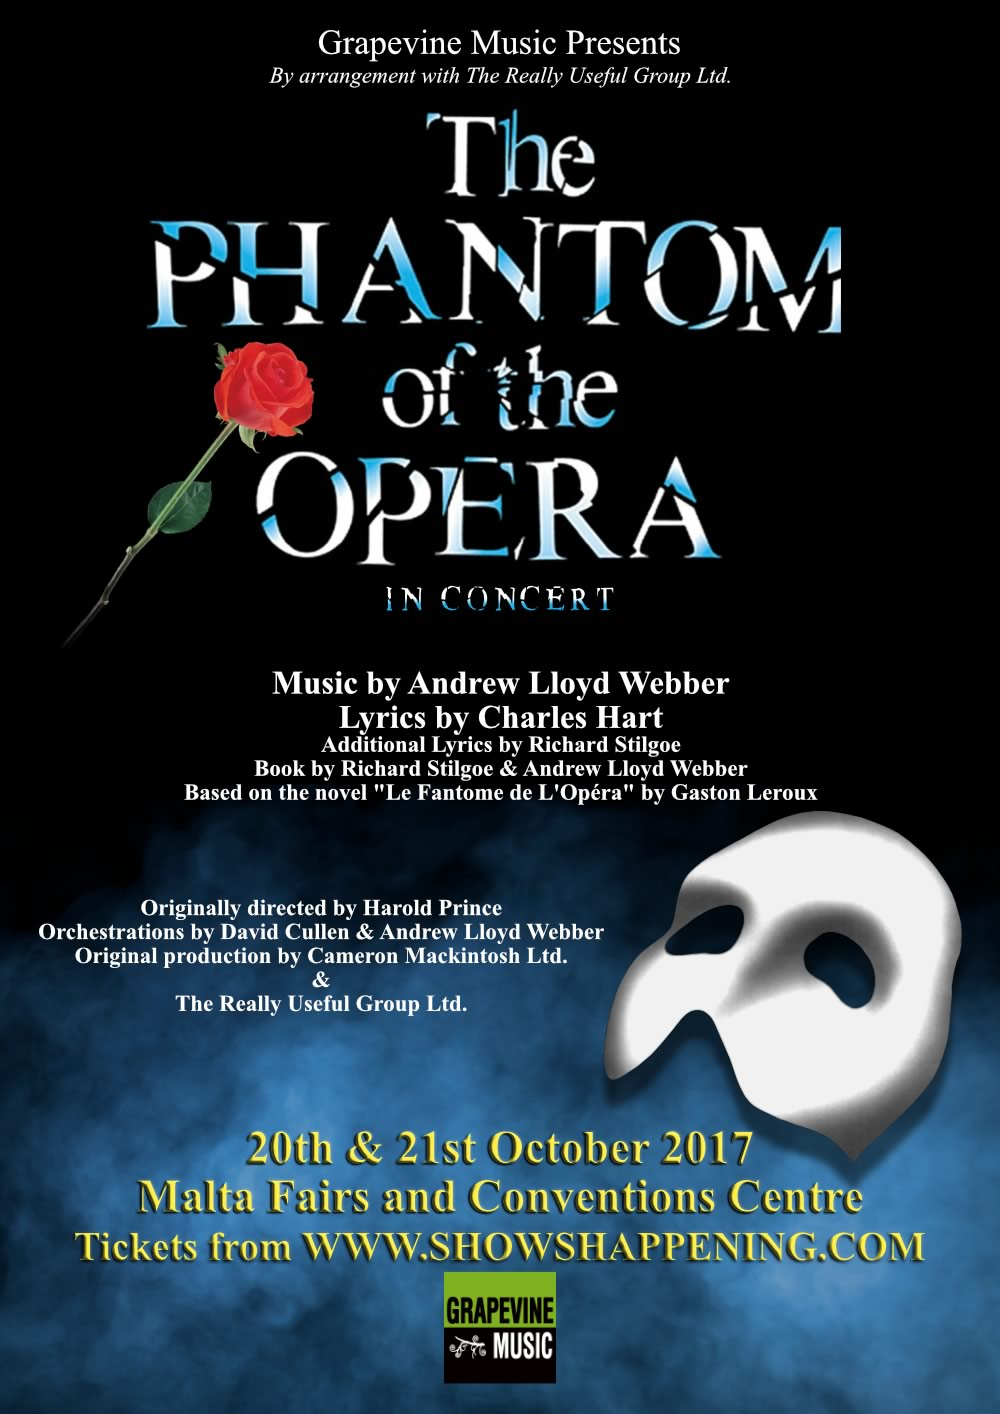 The Phantom Of the Opera flyer